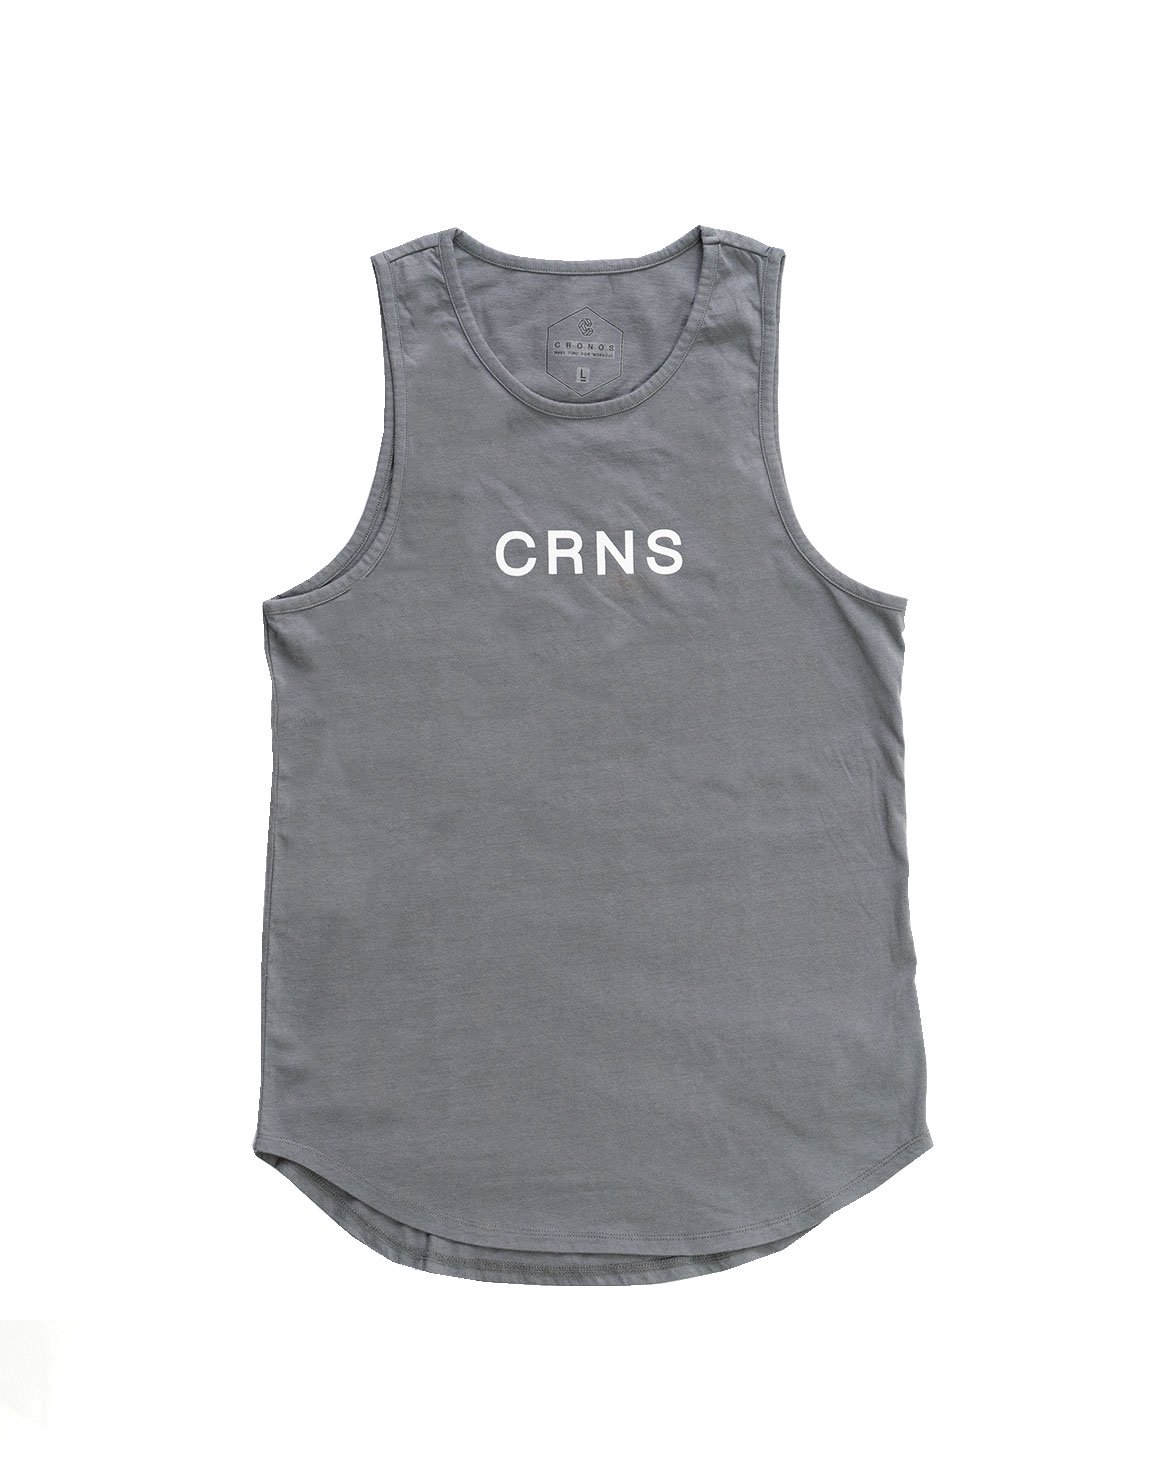 <img class='new_mark_img1' src='https://img.shop-pro.jp/img/new/icons1.gif' style='border:none;display:inline;margin:0px;padding:0px;width:auto;' />CRNS TANKTOP GRAY